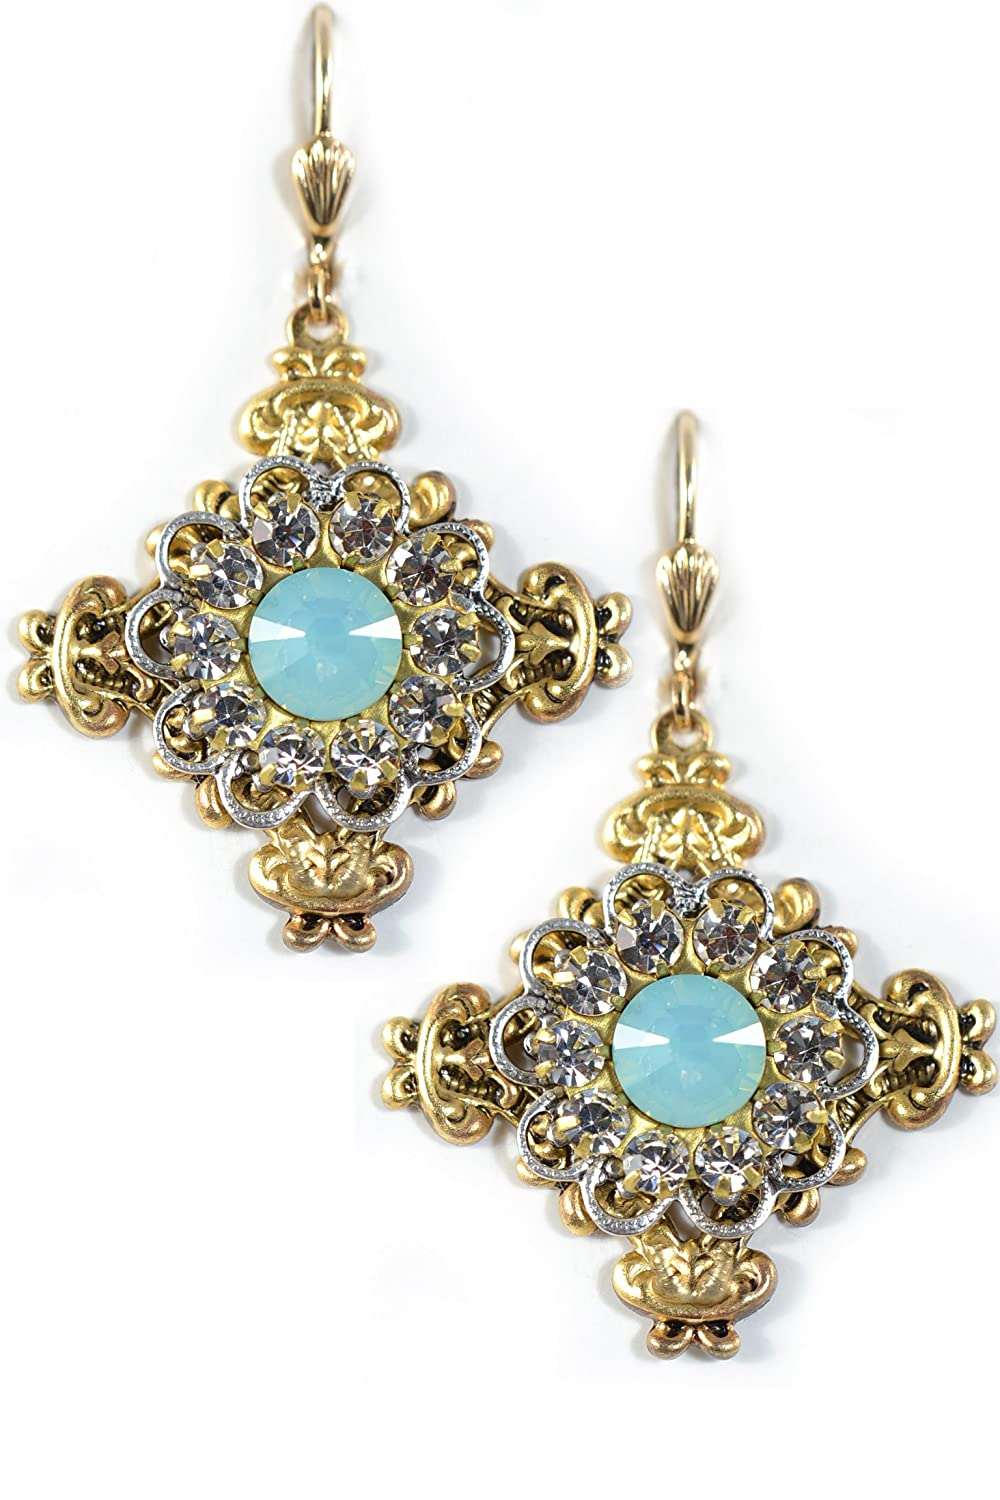 Clara Beau Lovely Pacific Opal Deco Swarovski crystal Medium Gold-Tone dangle earrings EV35